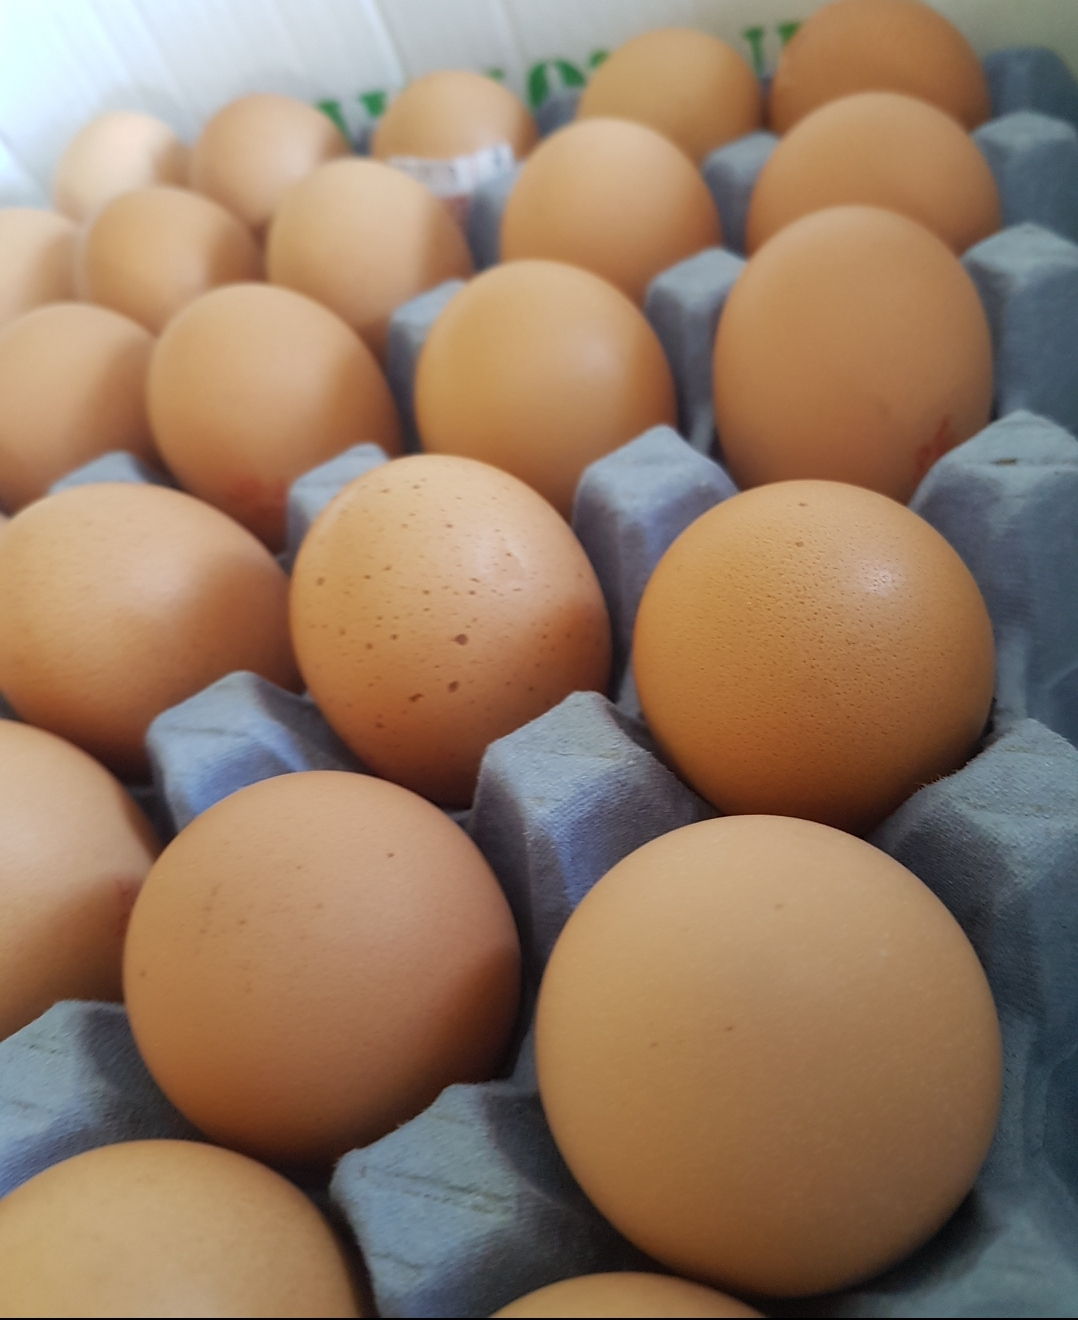 Medium Hen's Eggs Tray (30 eggs)